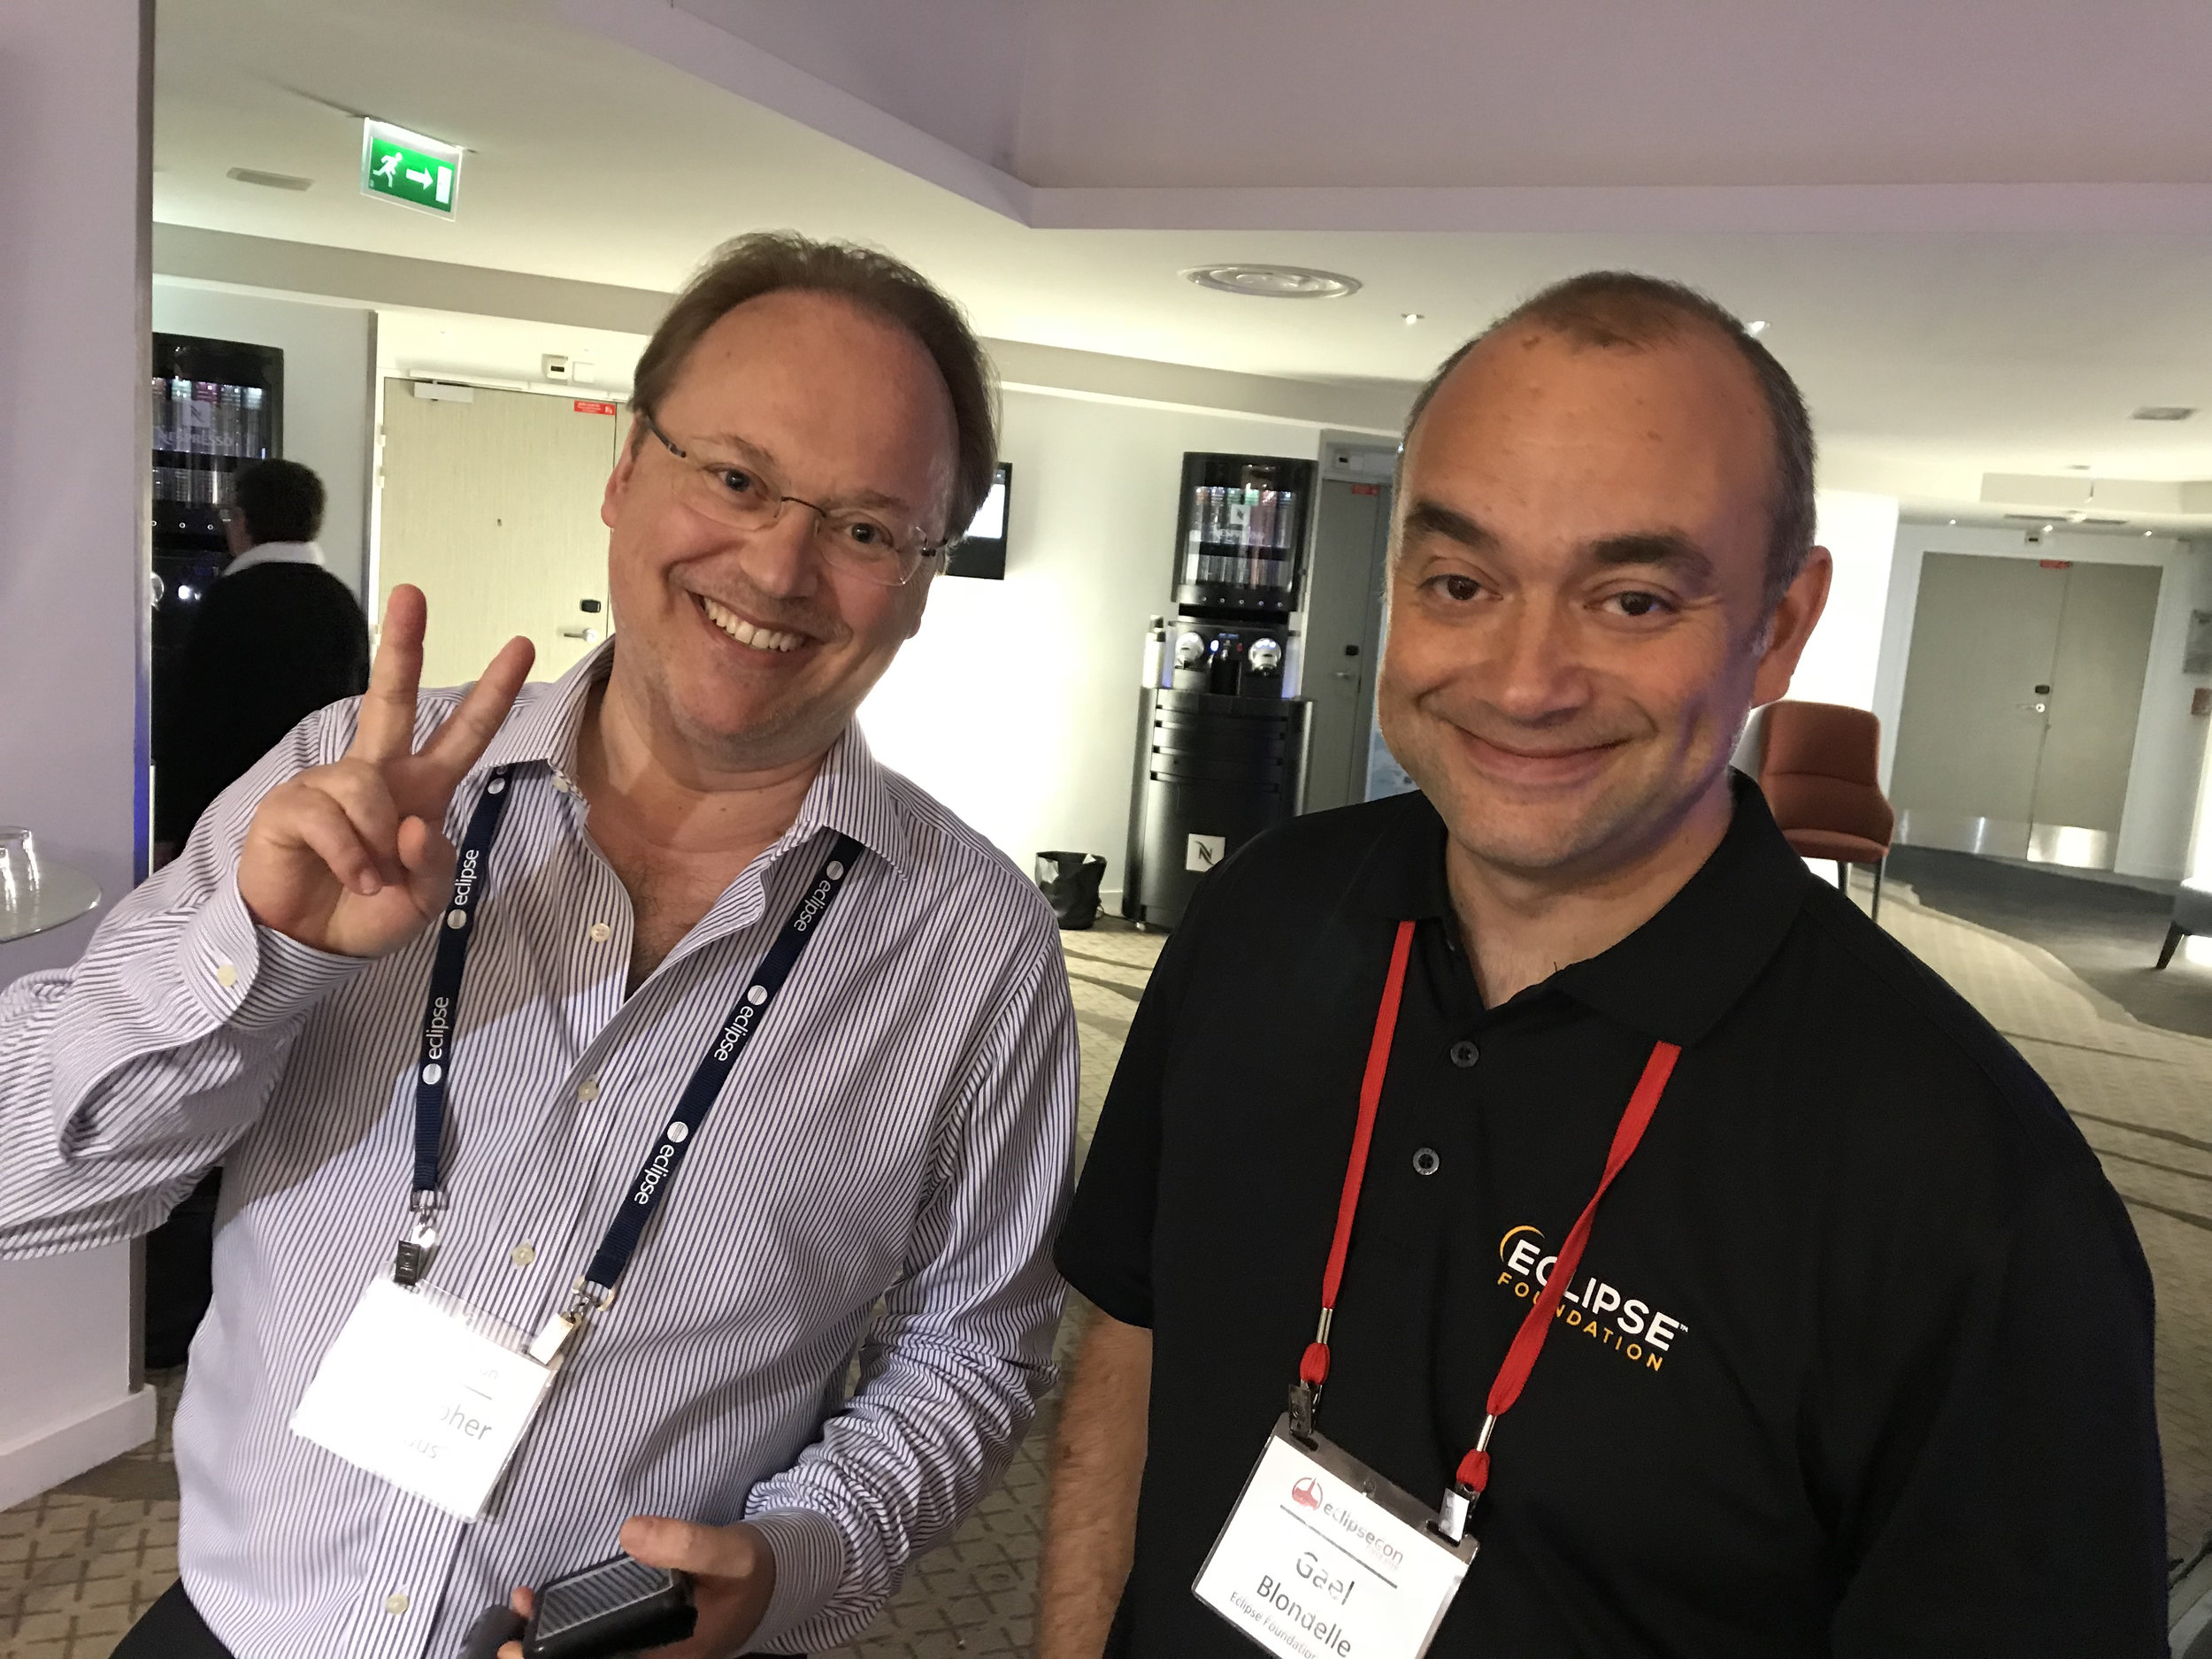 Christopher Mindus is happy at EclipseCon with Gaël Blondelle